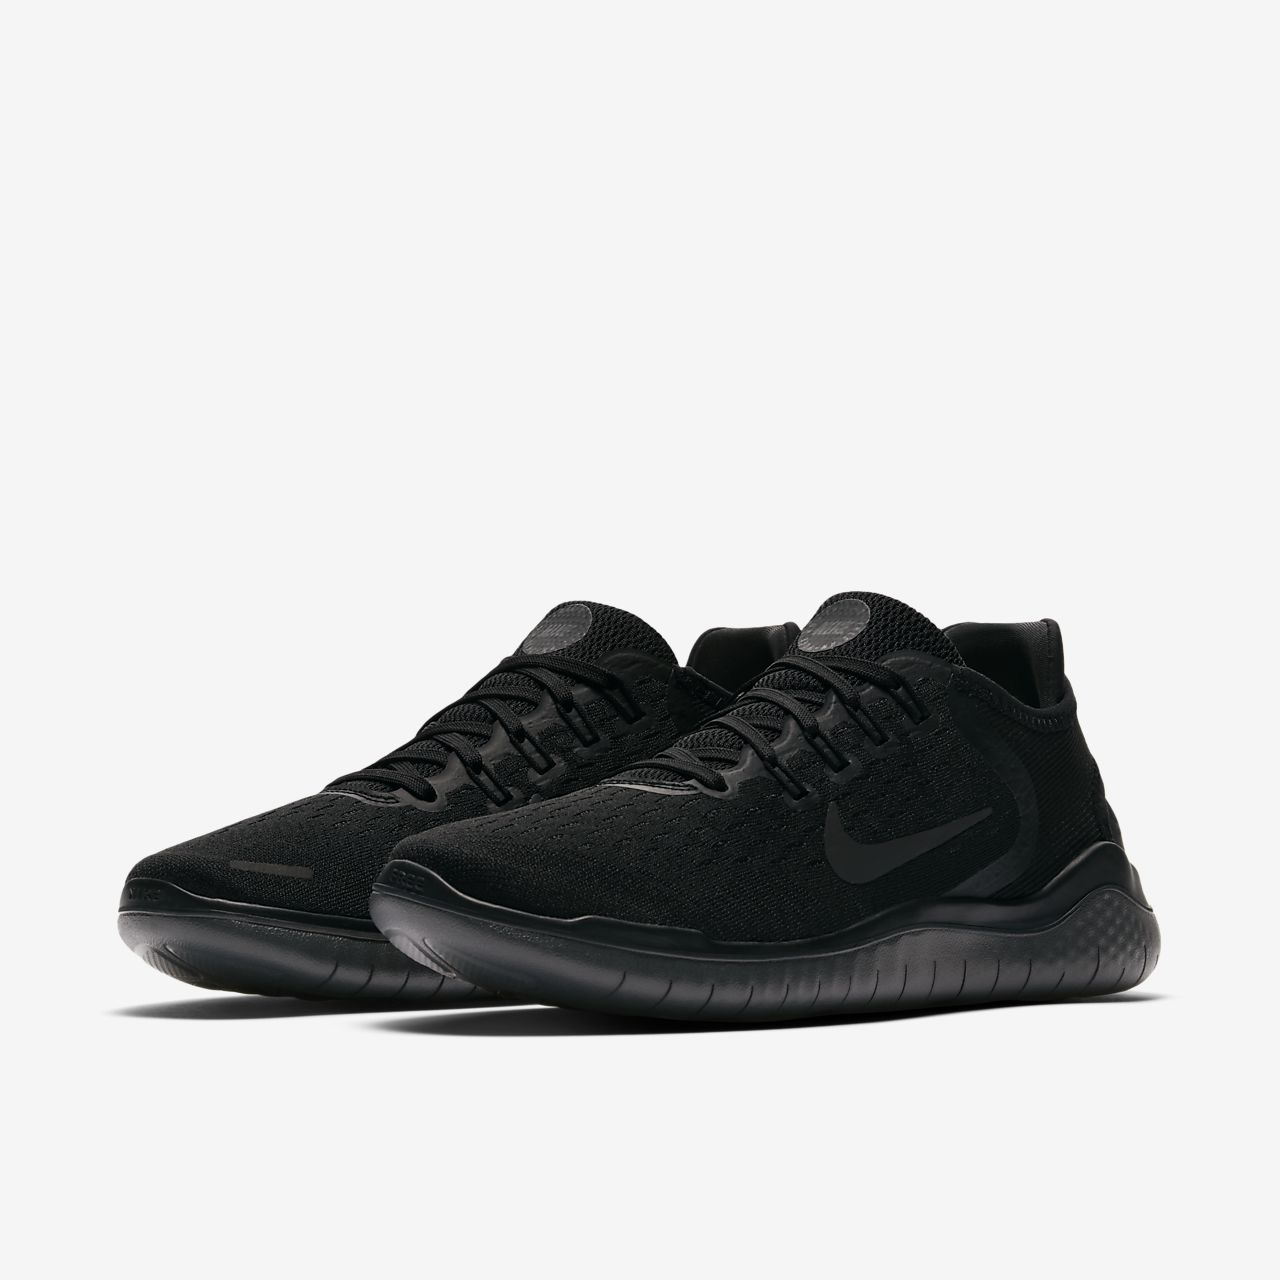 Free Running Femme Rn Chaussure Nike 2018 De Be Pour fvtwtqxRWC